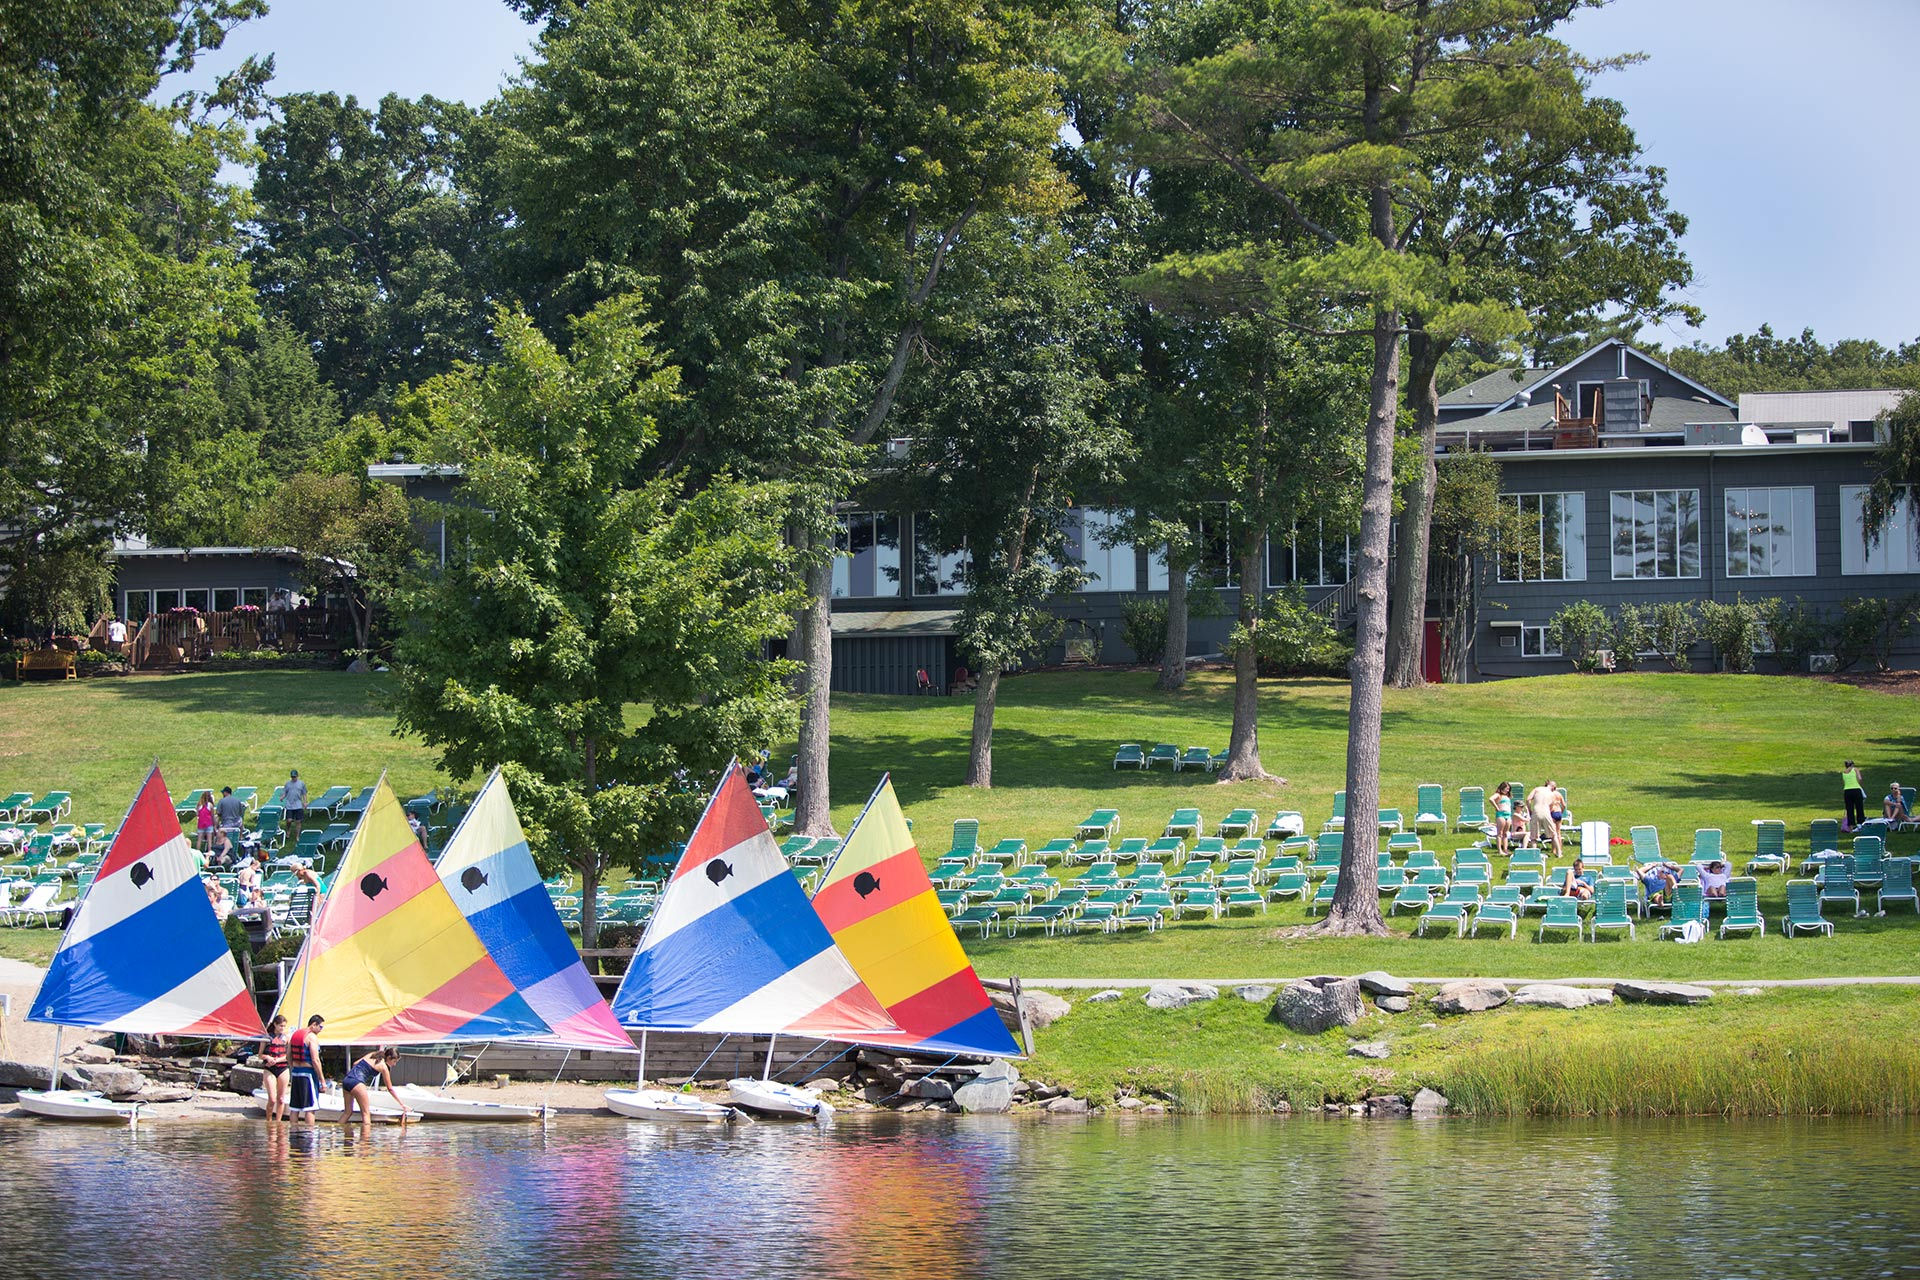 Woodloch Pines Resort in the Poconos